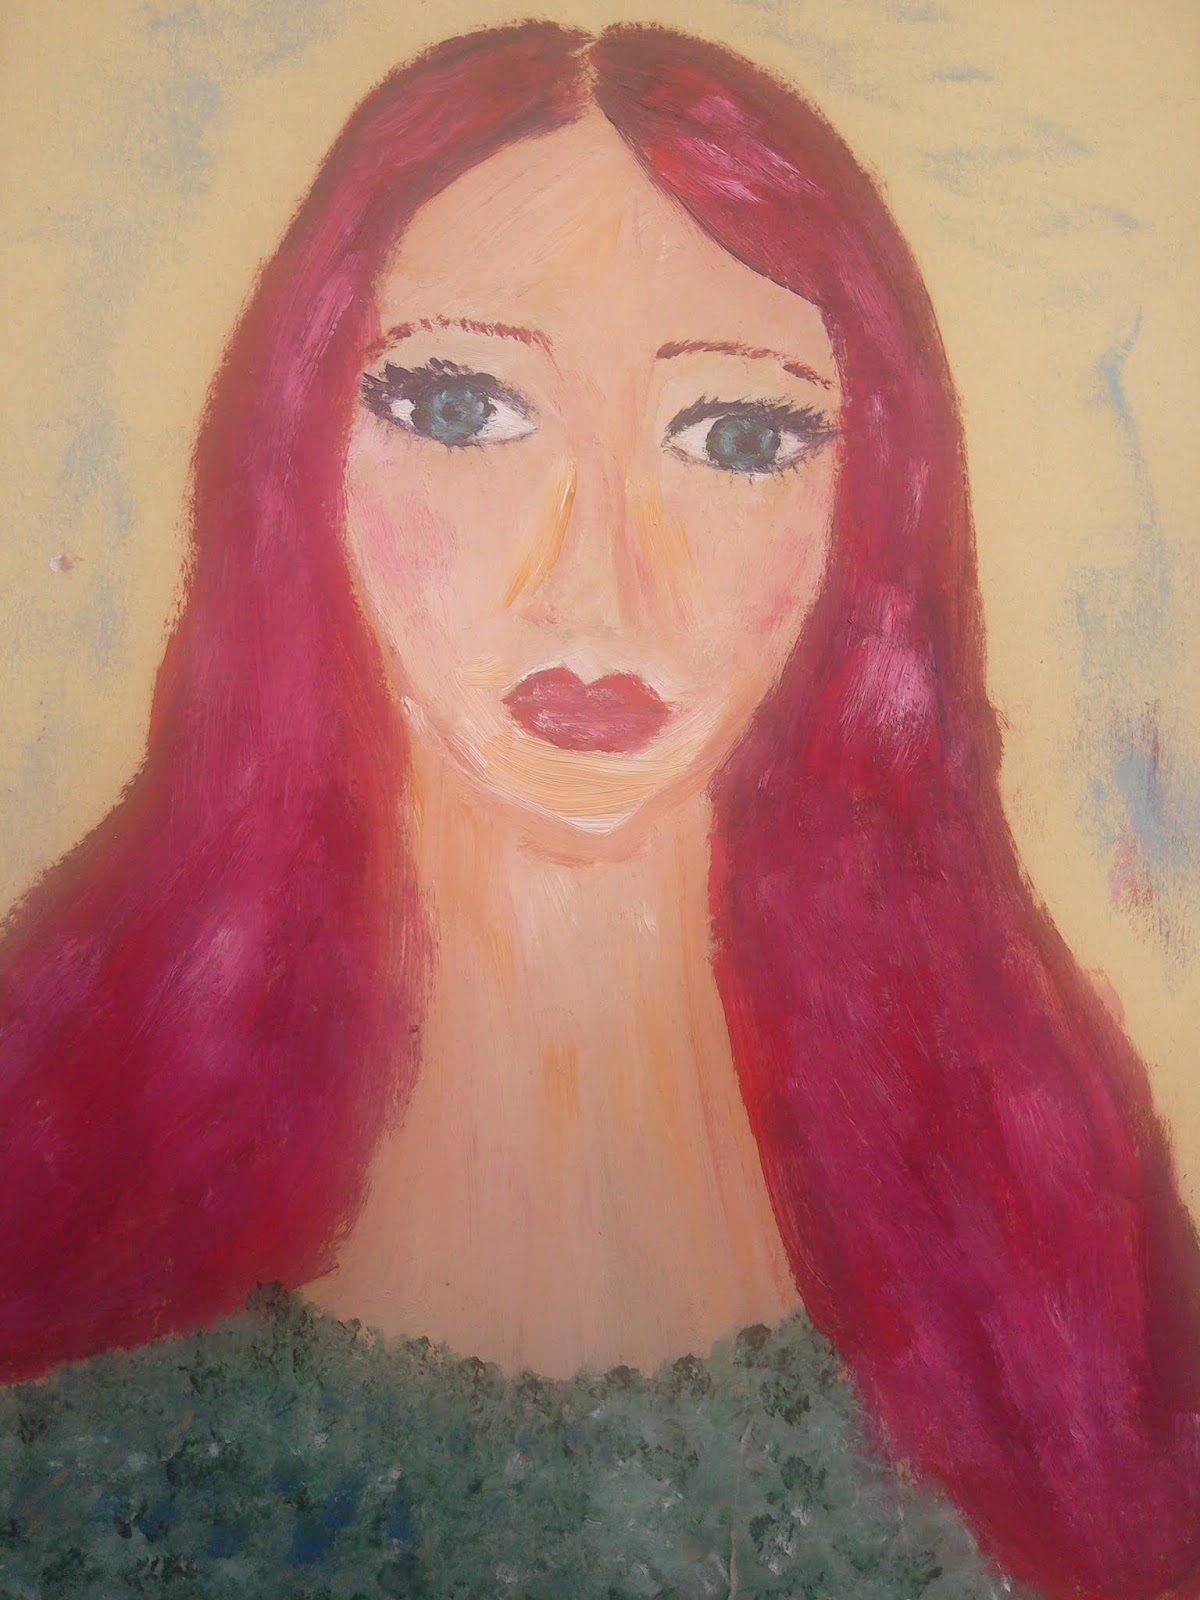 Watercolour & Oil Paintings: My Art Lately